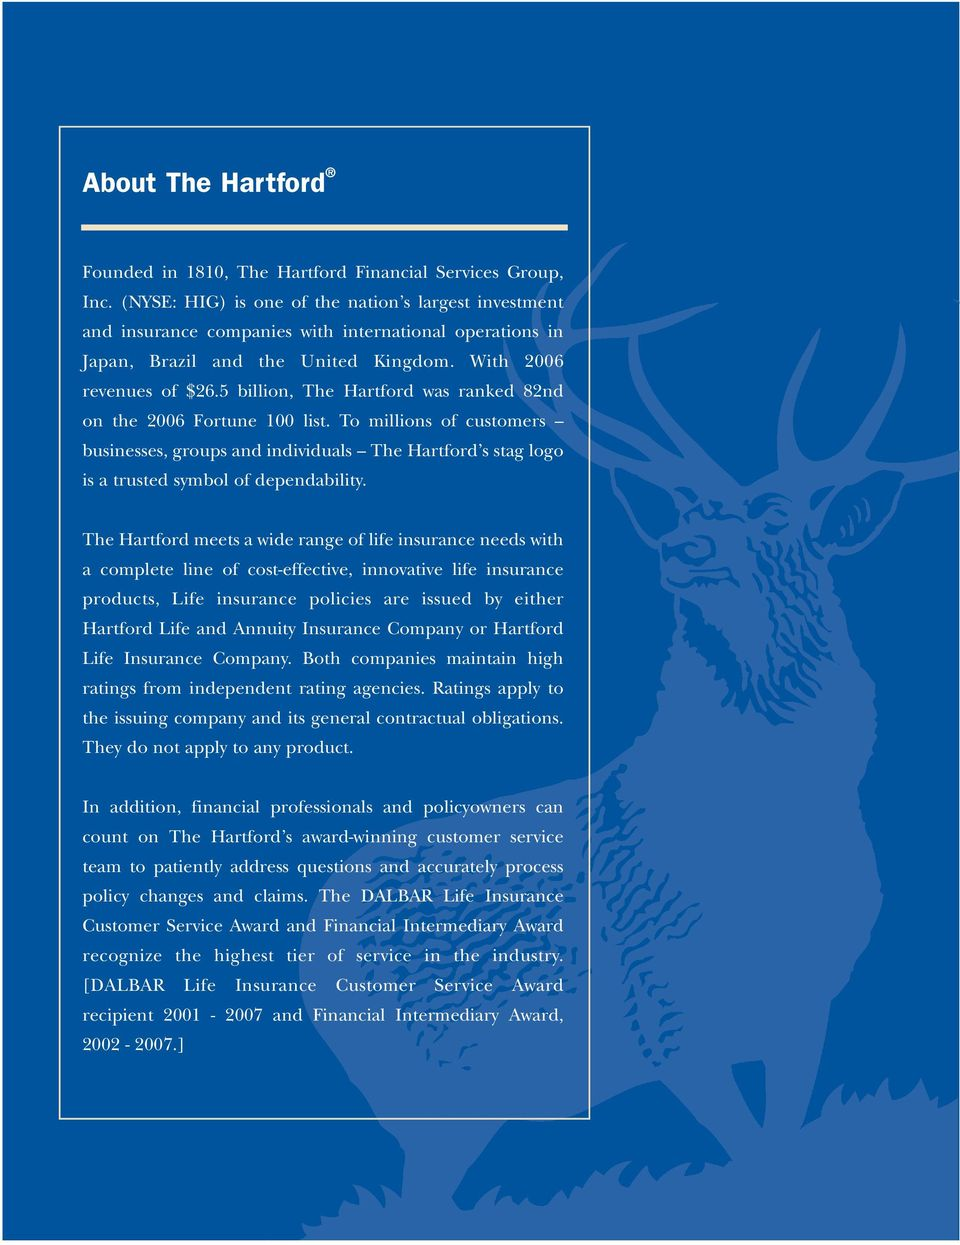 5 billion, The Hartford was ranked 82nd on the 2006 Fortune 100 list. To millions of customers businesses, groups and individuals The Hartford s stag logo is a trusted symbol of dependability.